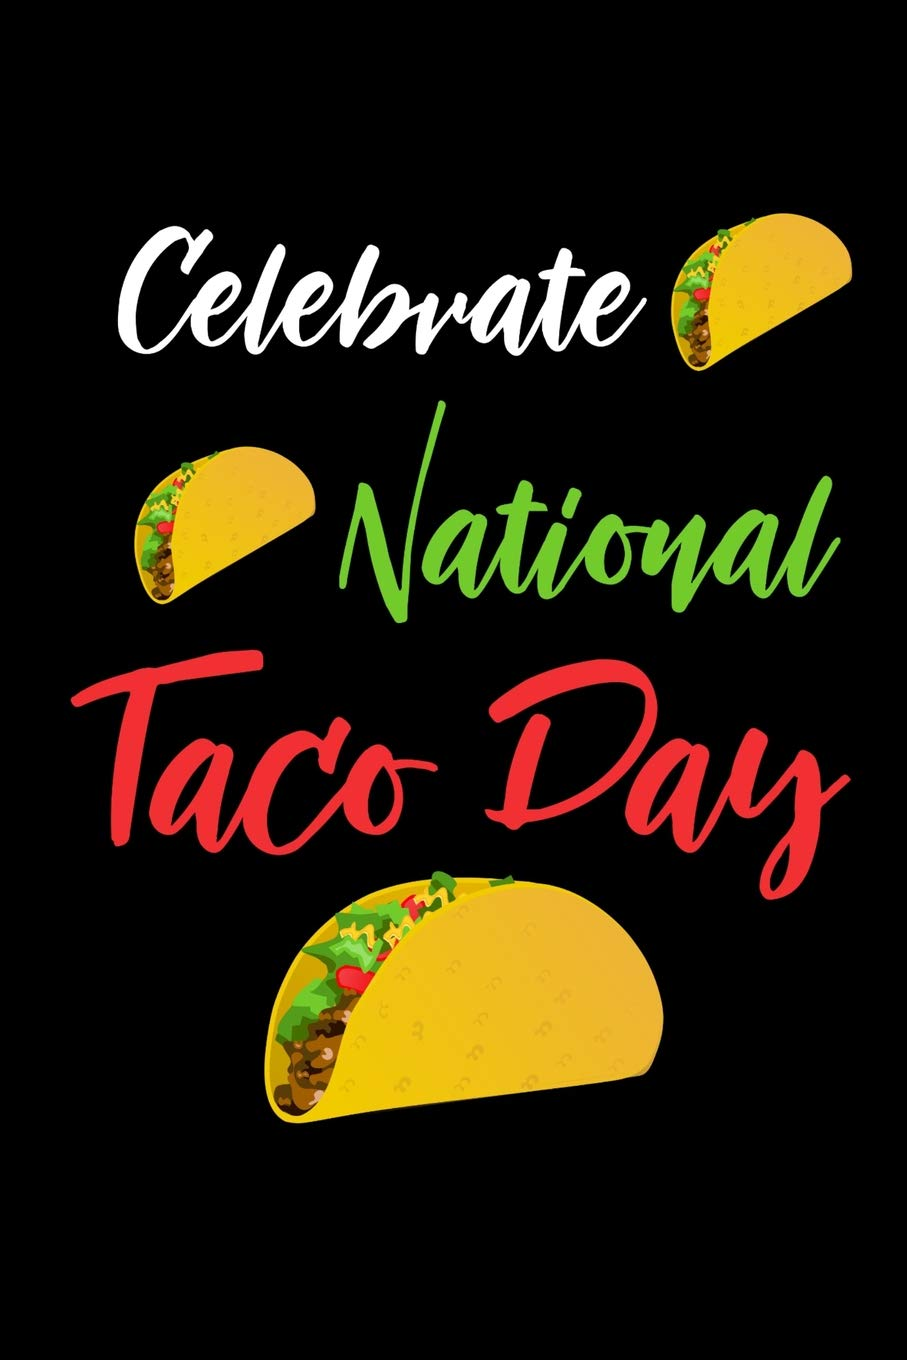 October 4th Is 'National Taco Day'! How Will You Celebrate?!